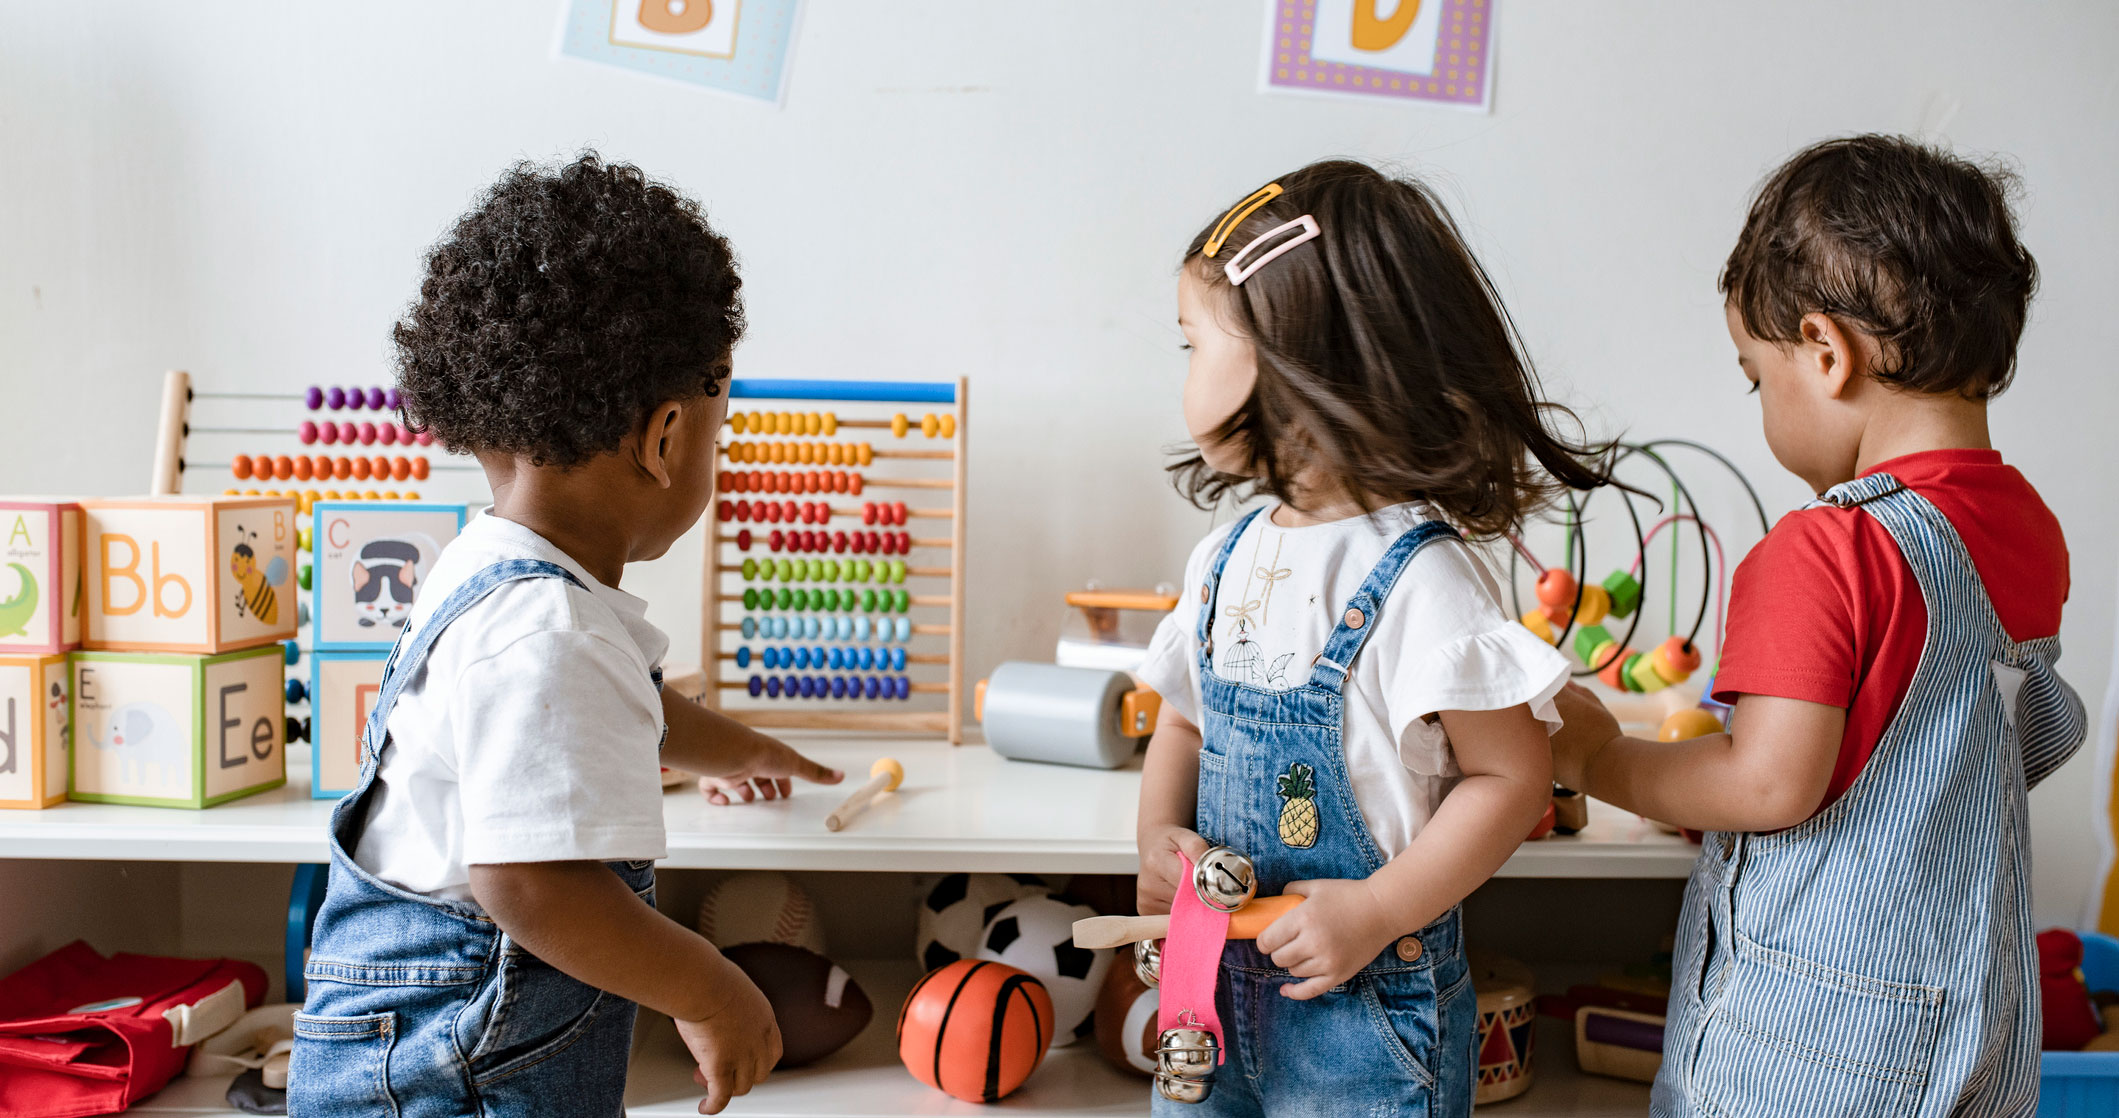 Preschool children playing with educational toys.